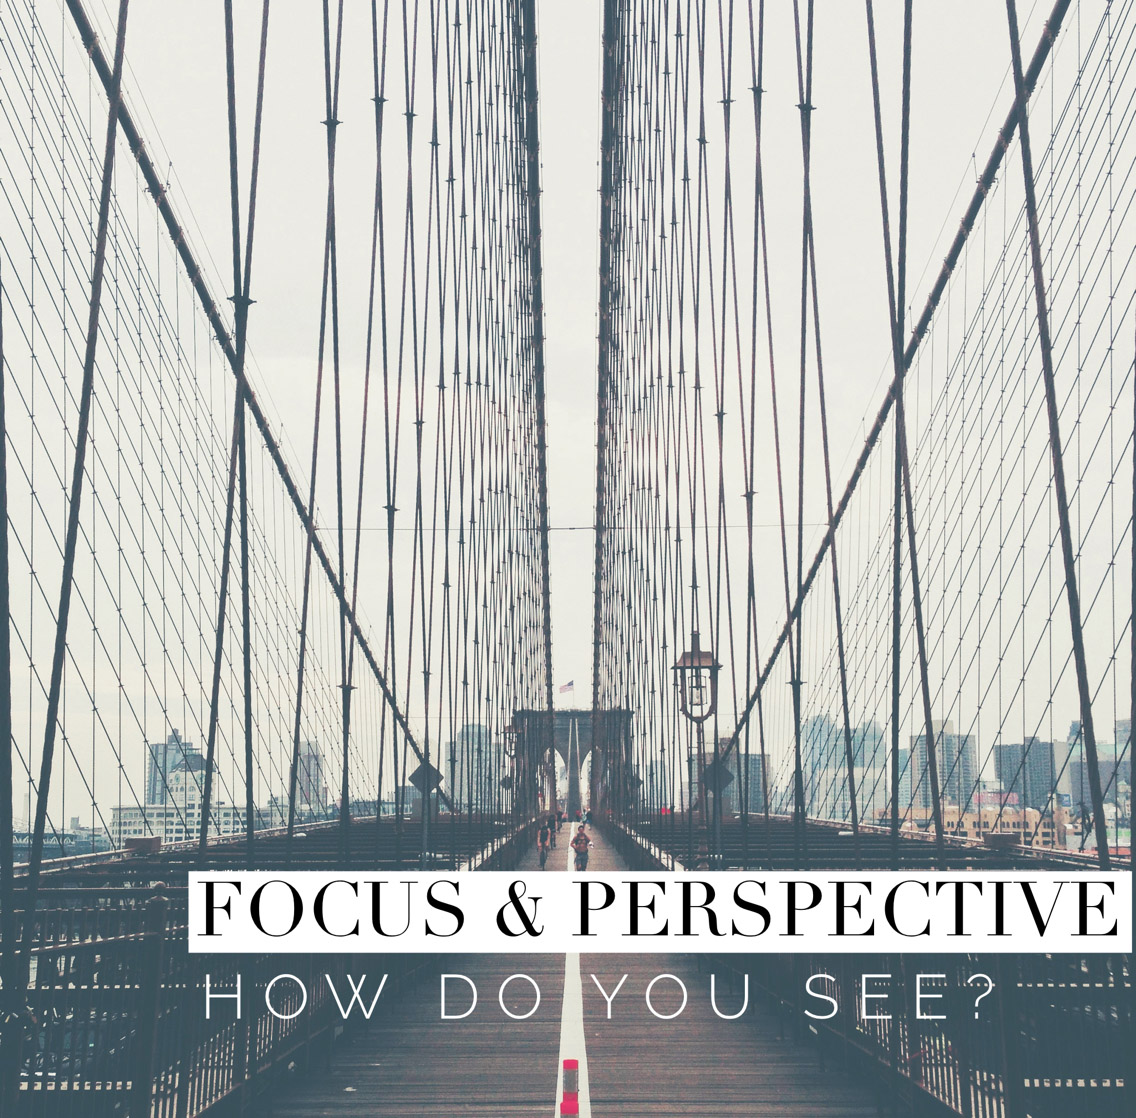 Focus & Perspective - How do you see?